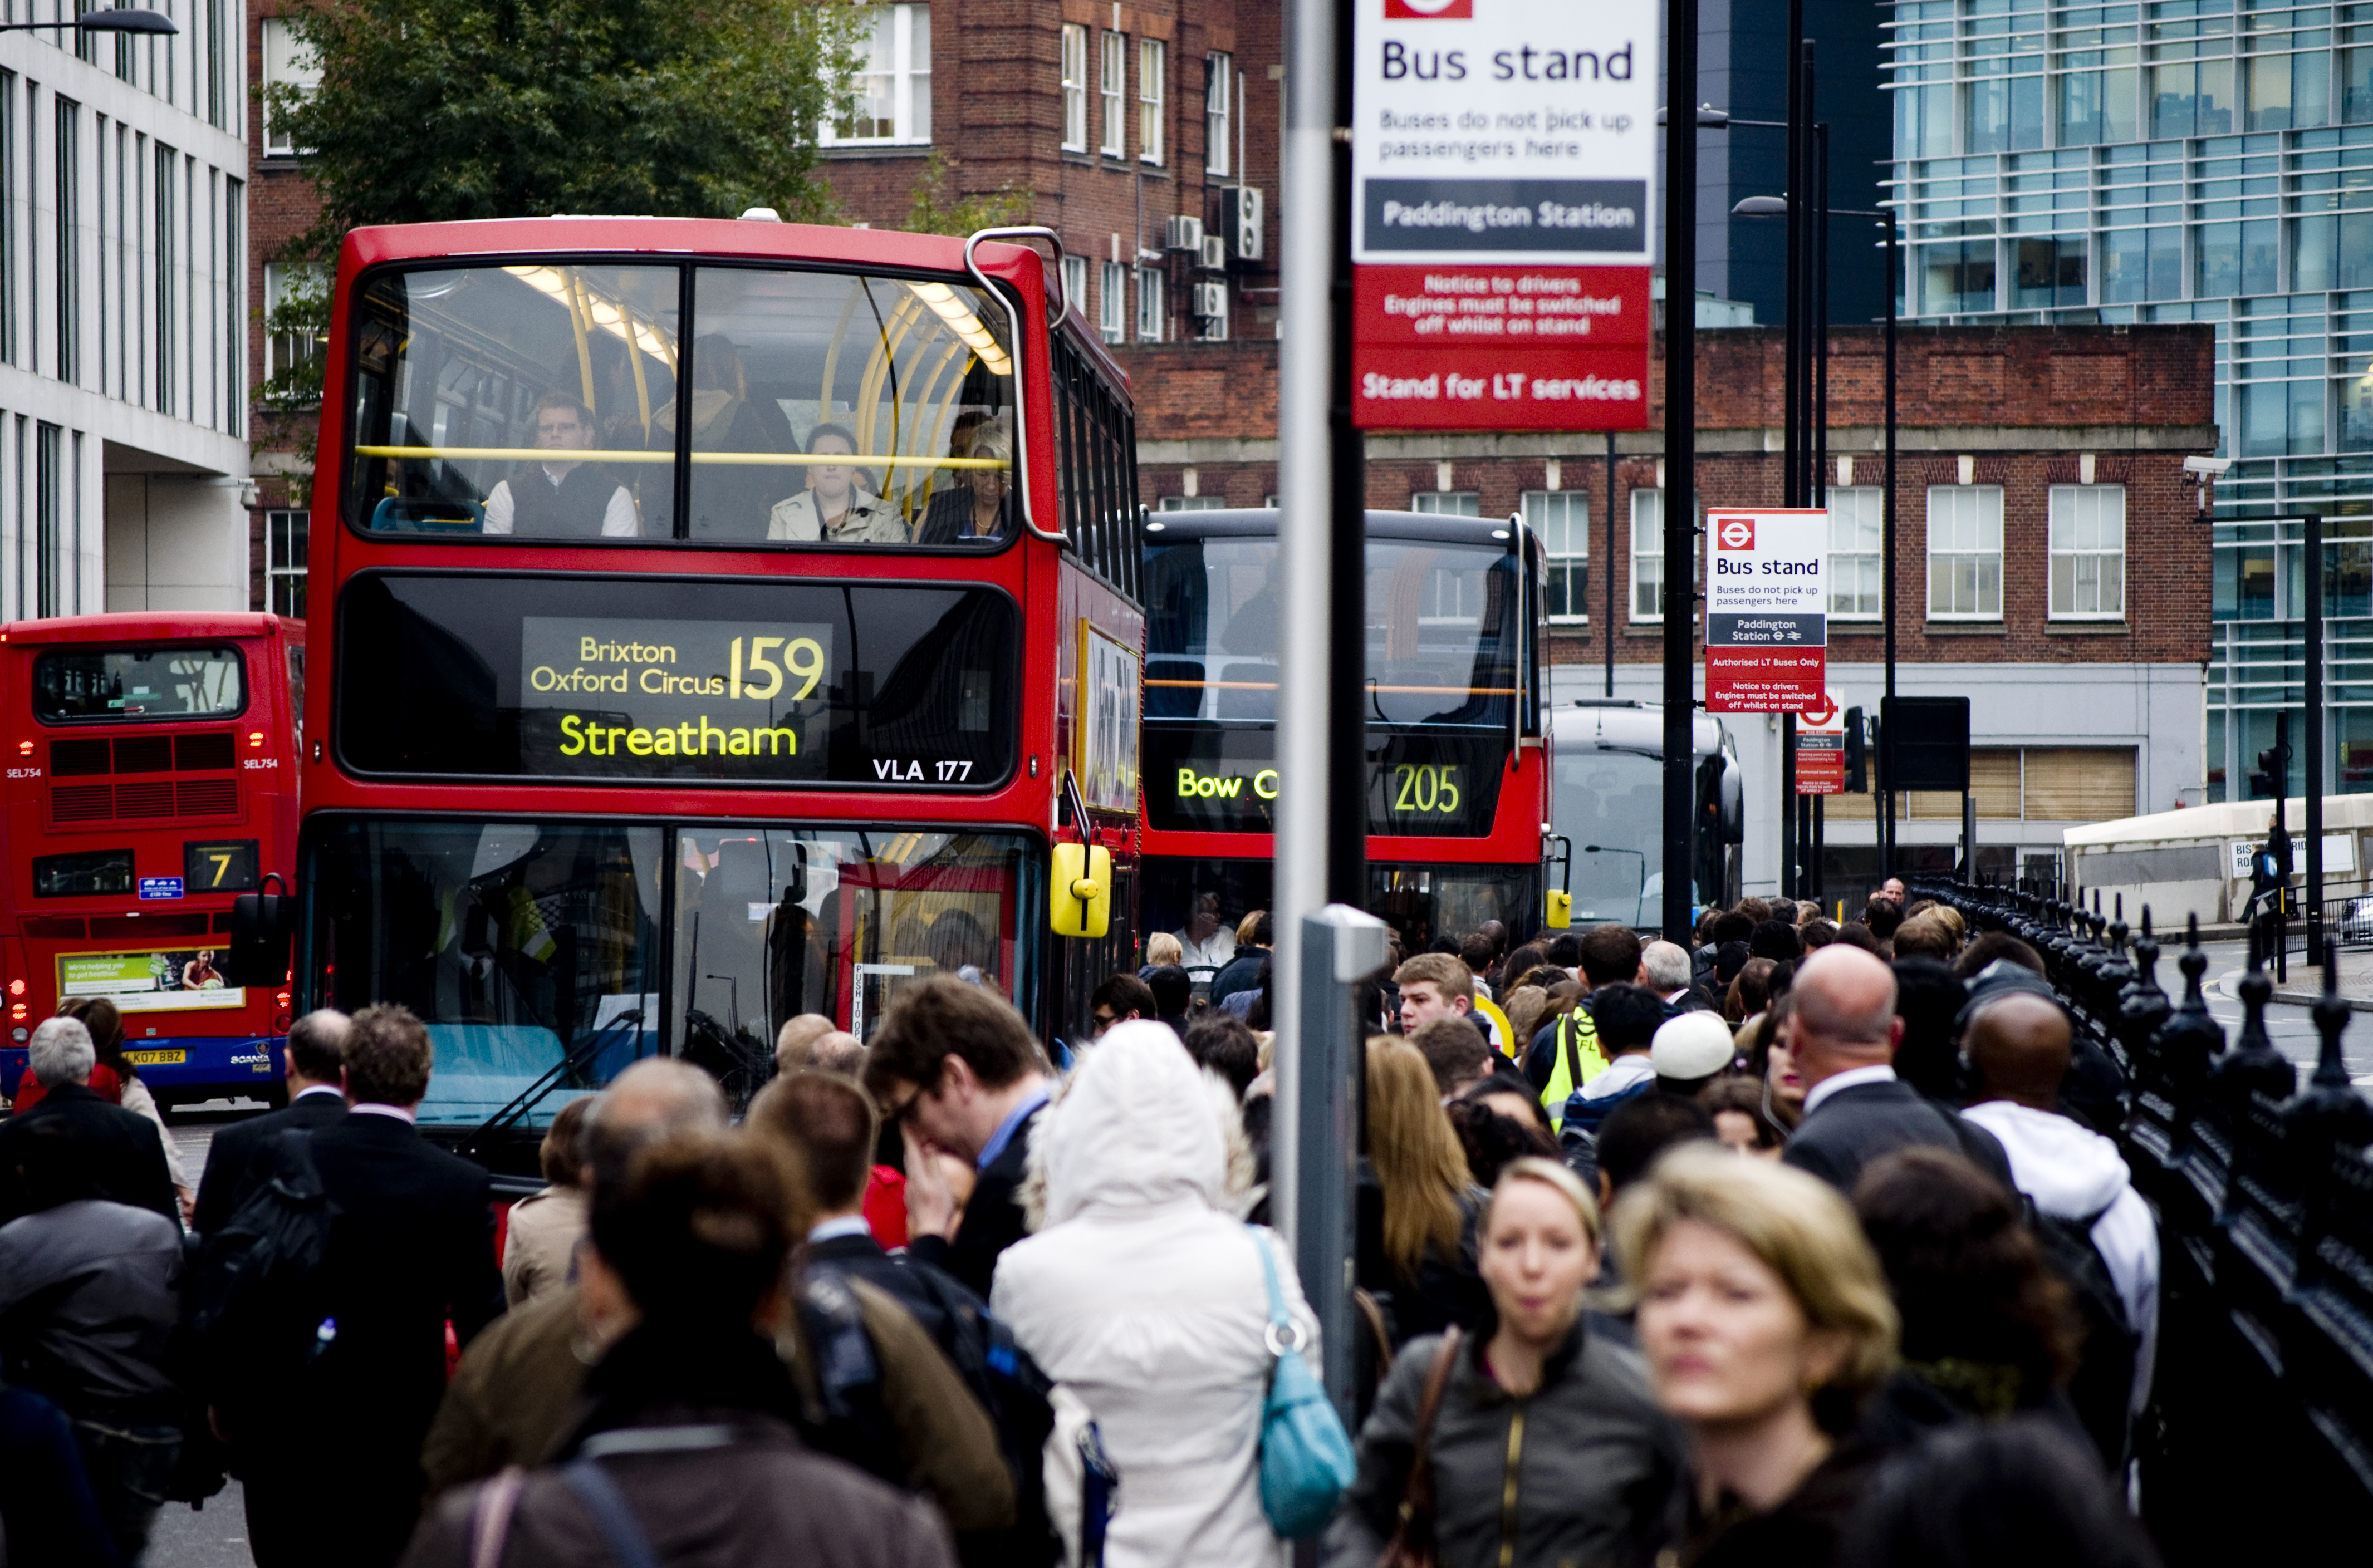 File:October 4th Tube Strike -- Crowded Bus Stand (5050096435).jpg